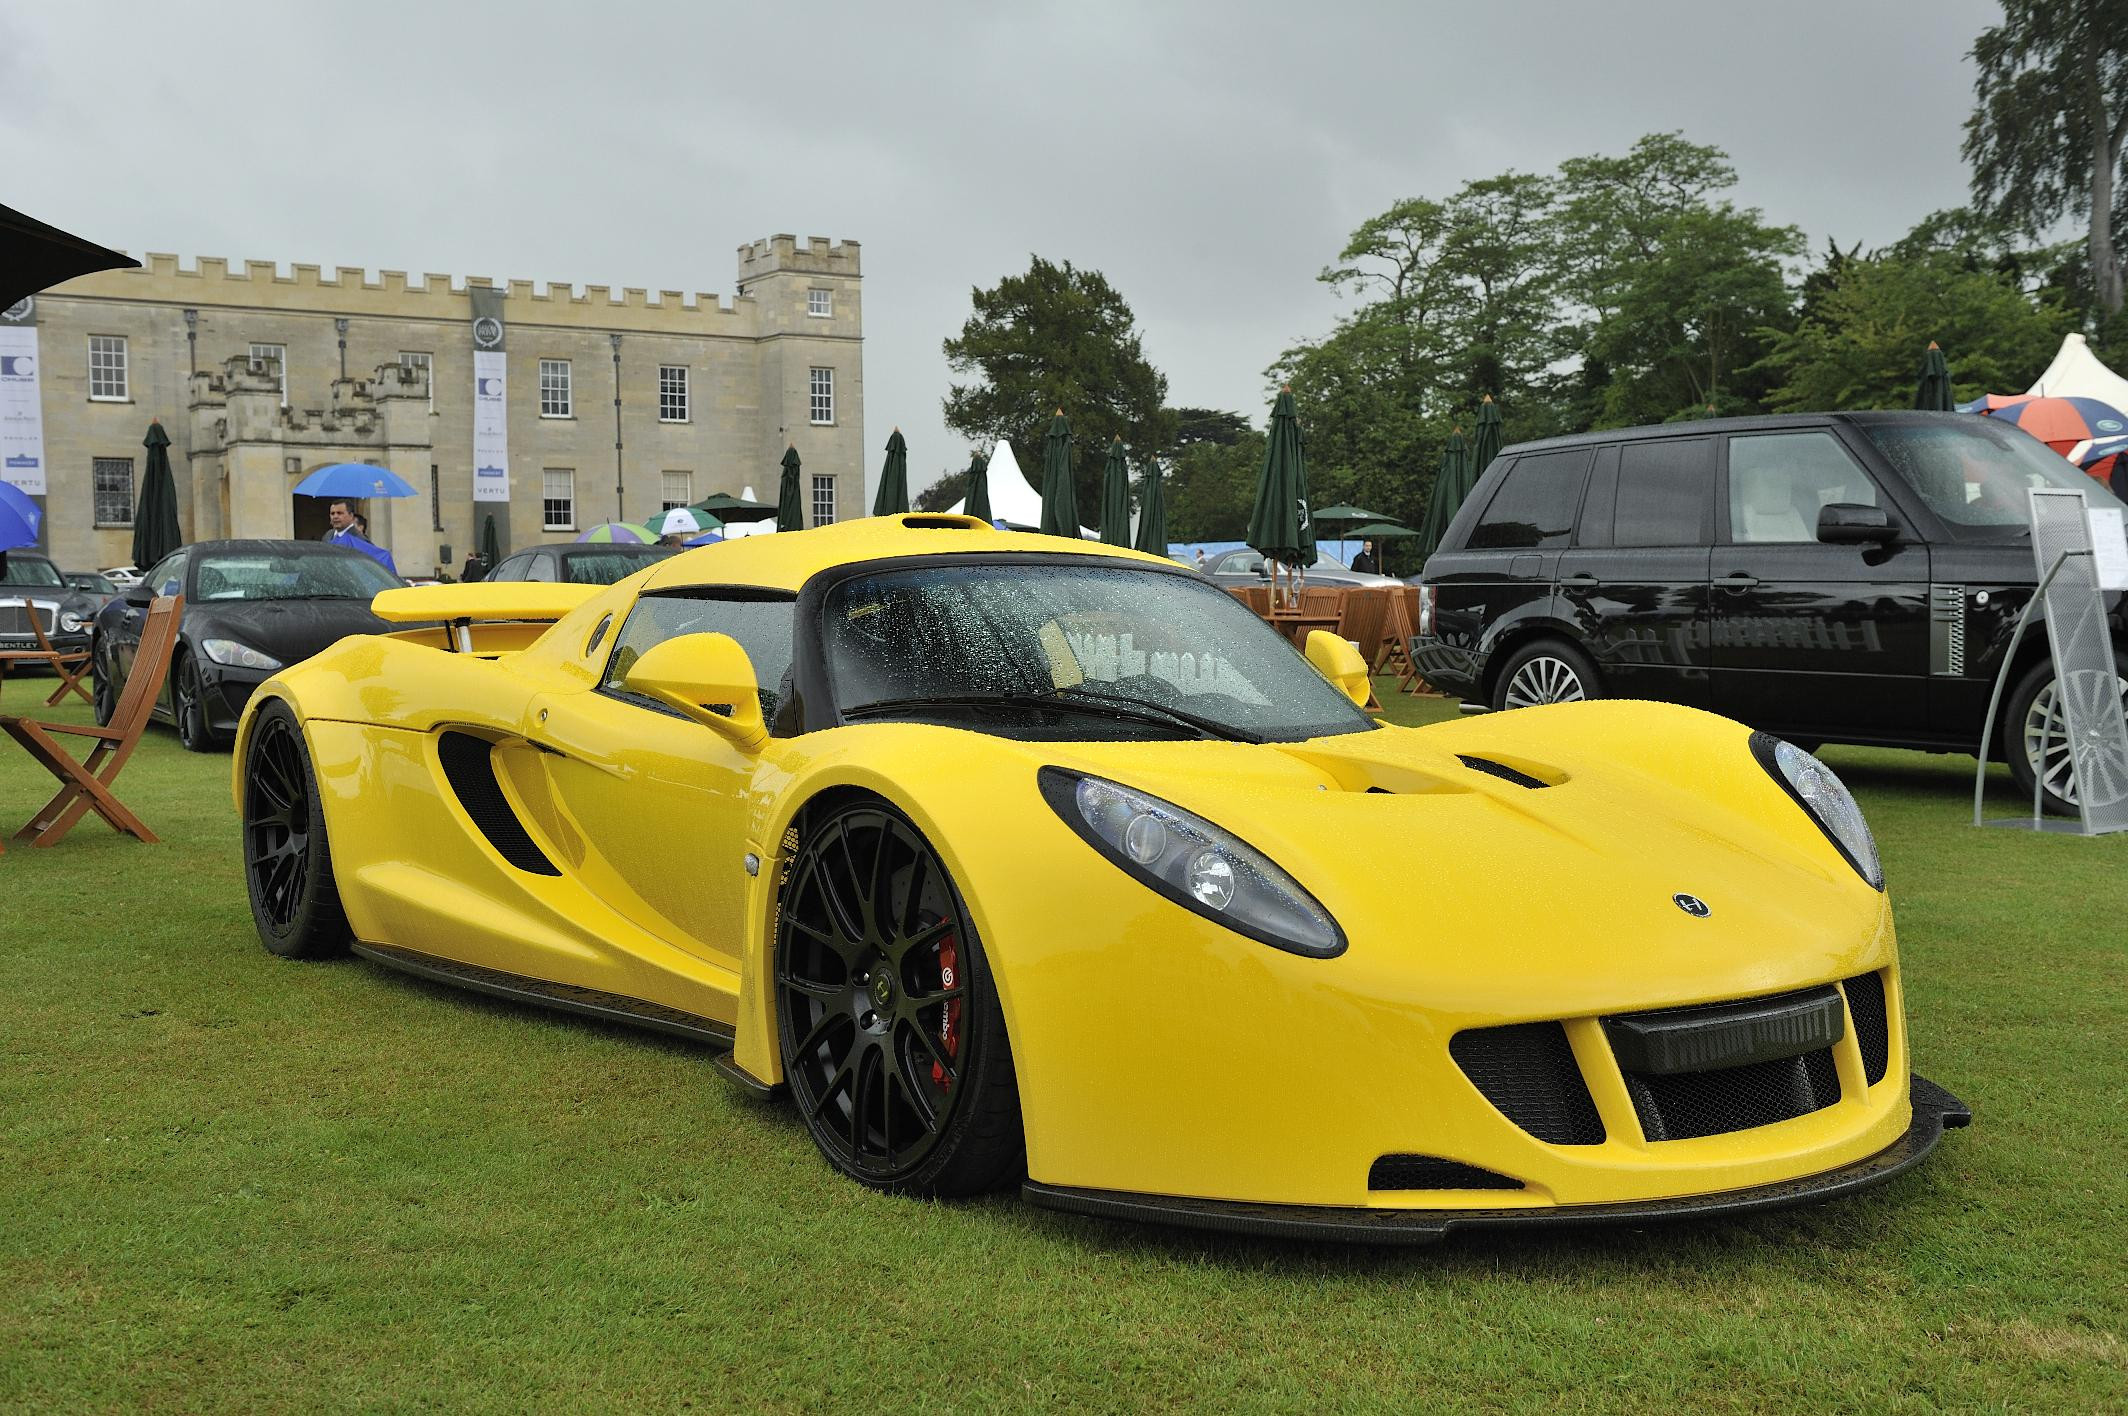 Bright yellow Henessey Venom GT on display at a show